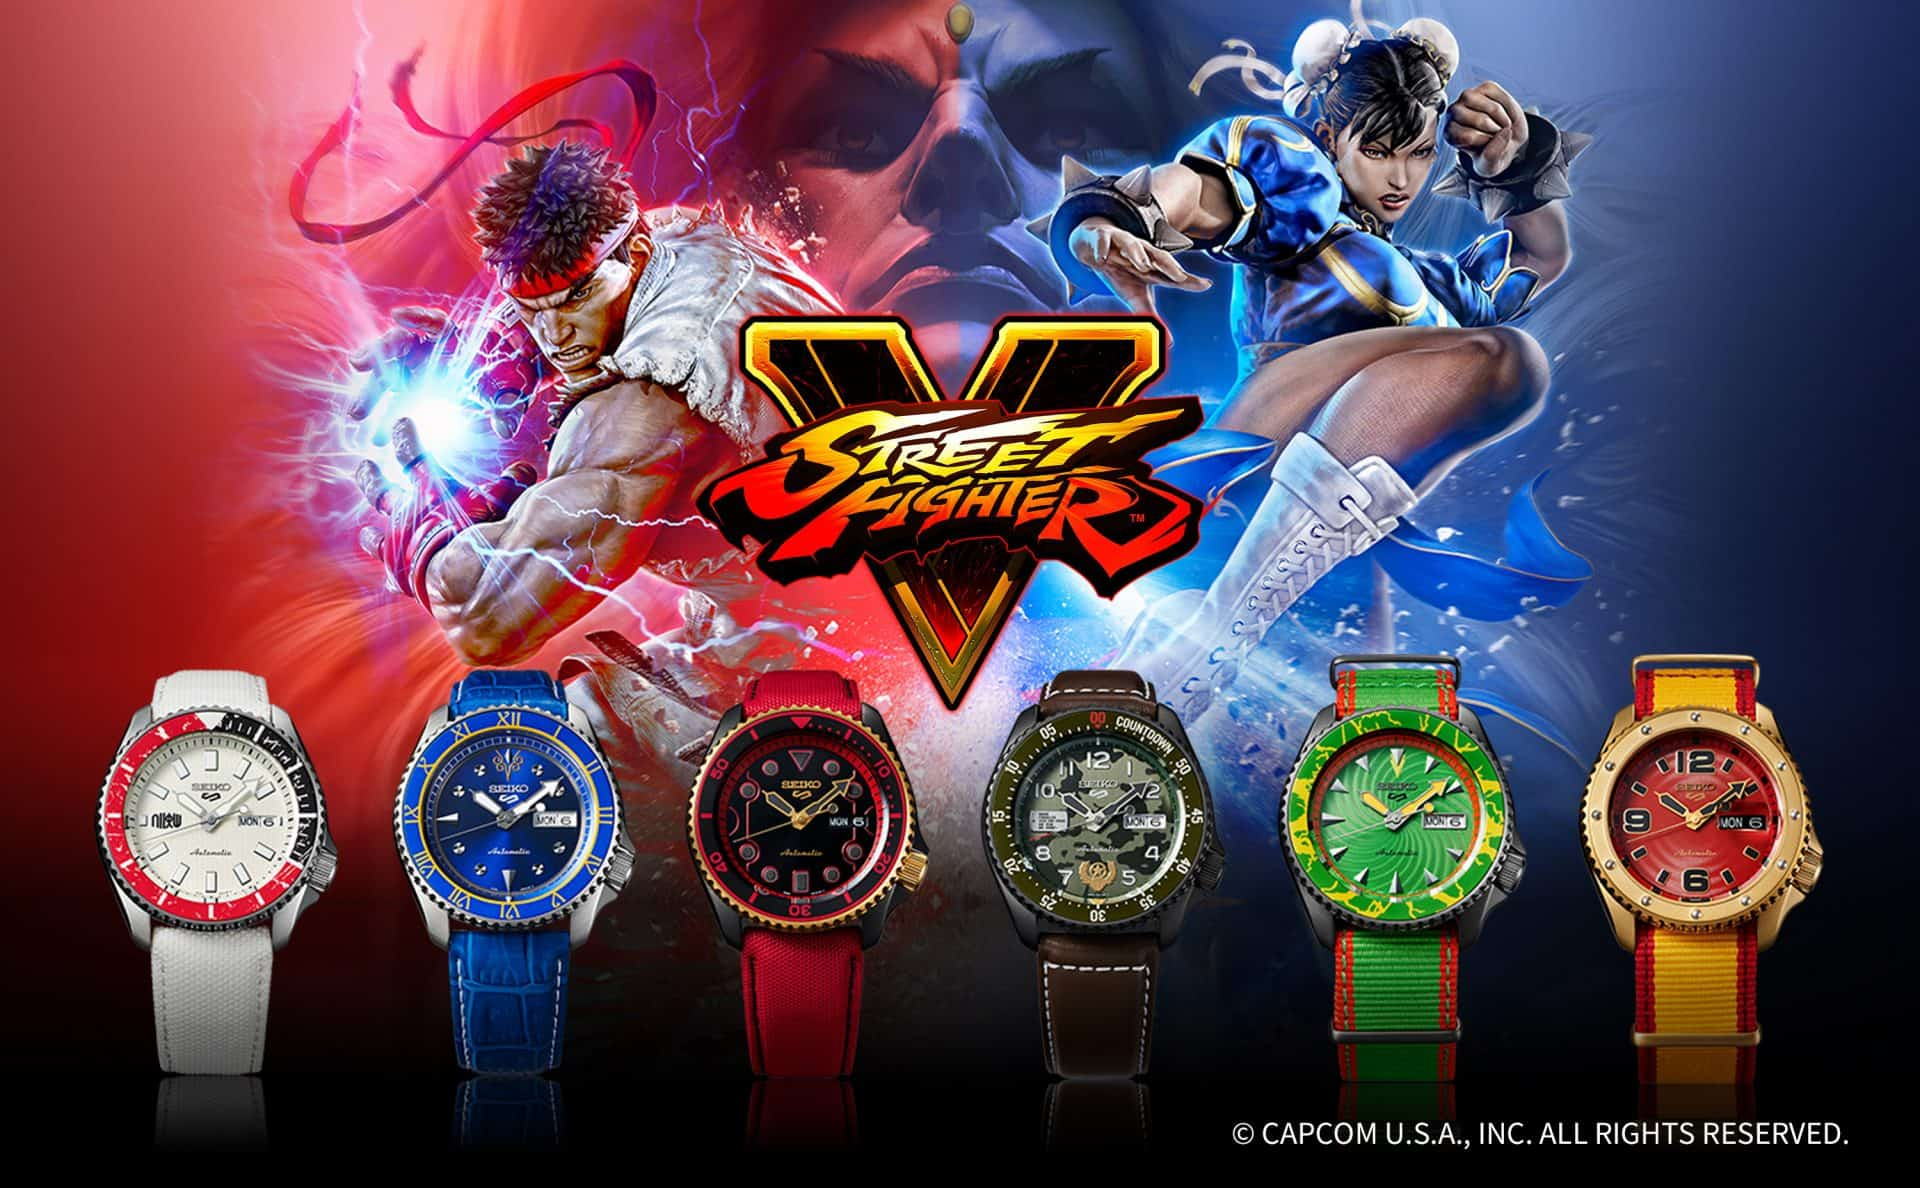 Seiko 5 Sports Street Fighter V Limited Edition6 bunte Charaktere: Die Seiko 5 Sports Street Fighter V Edition